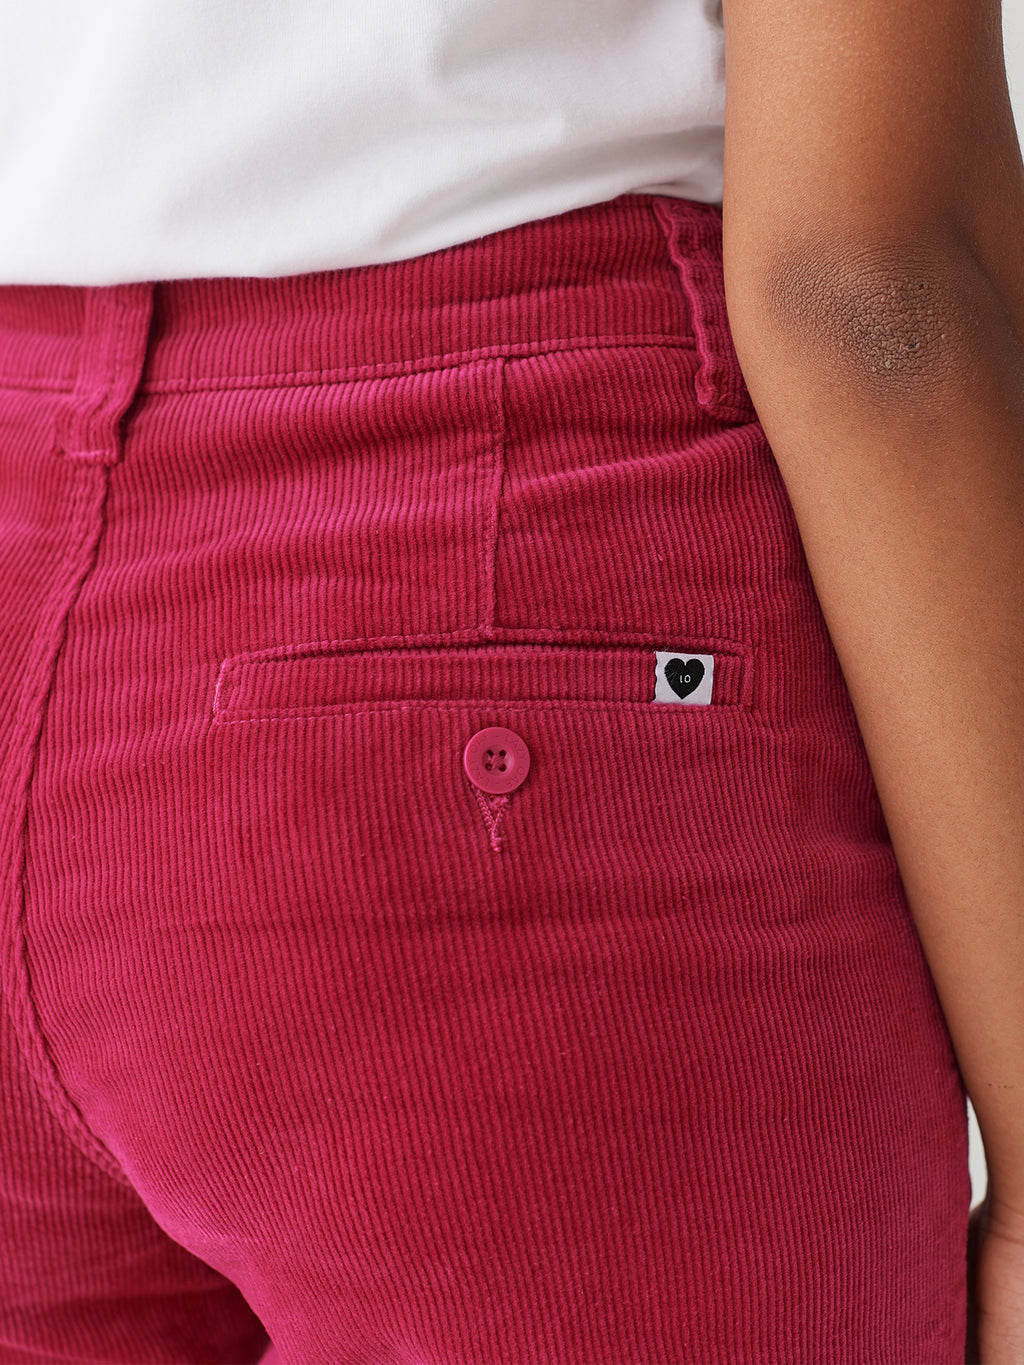 LO Work Pants - Pink Cord